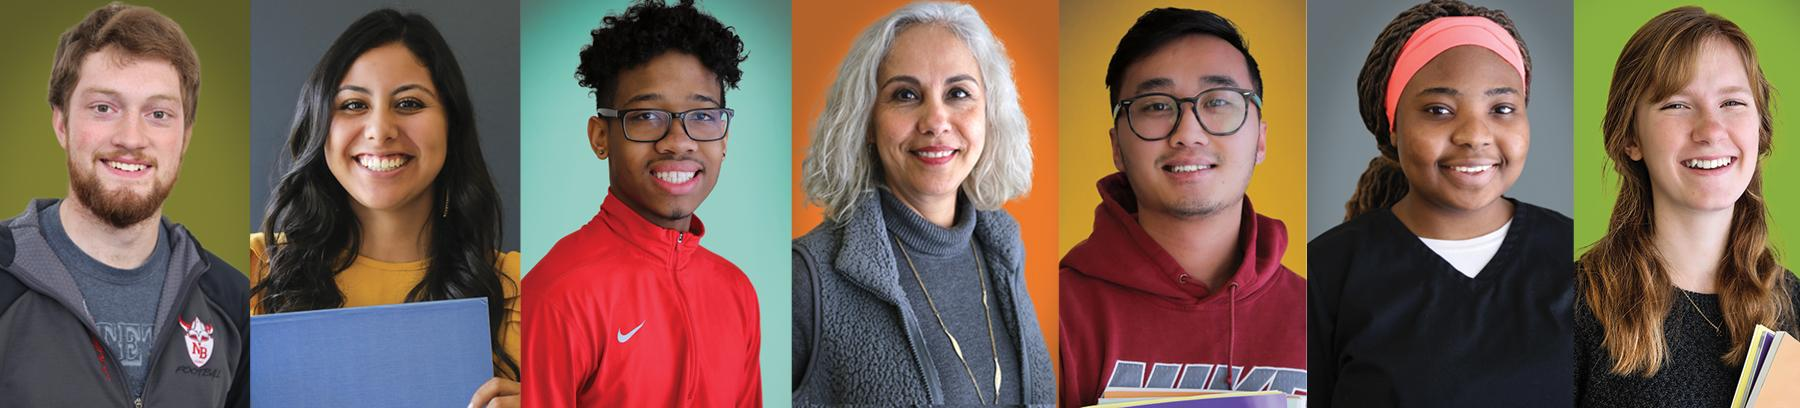 Century College student portraits with a bright colored background